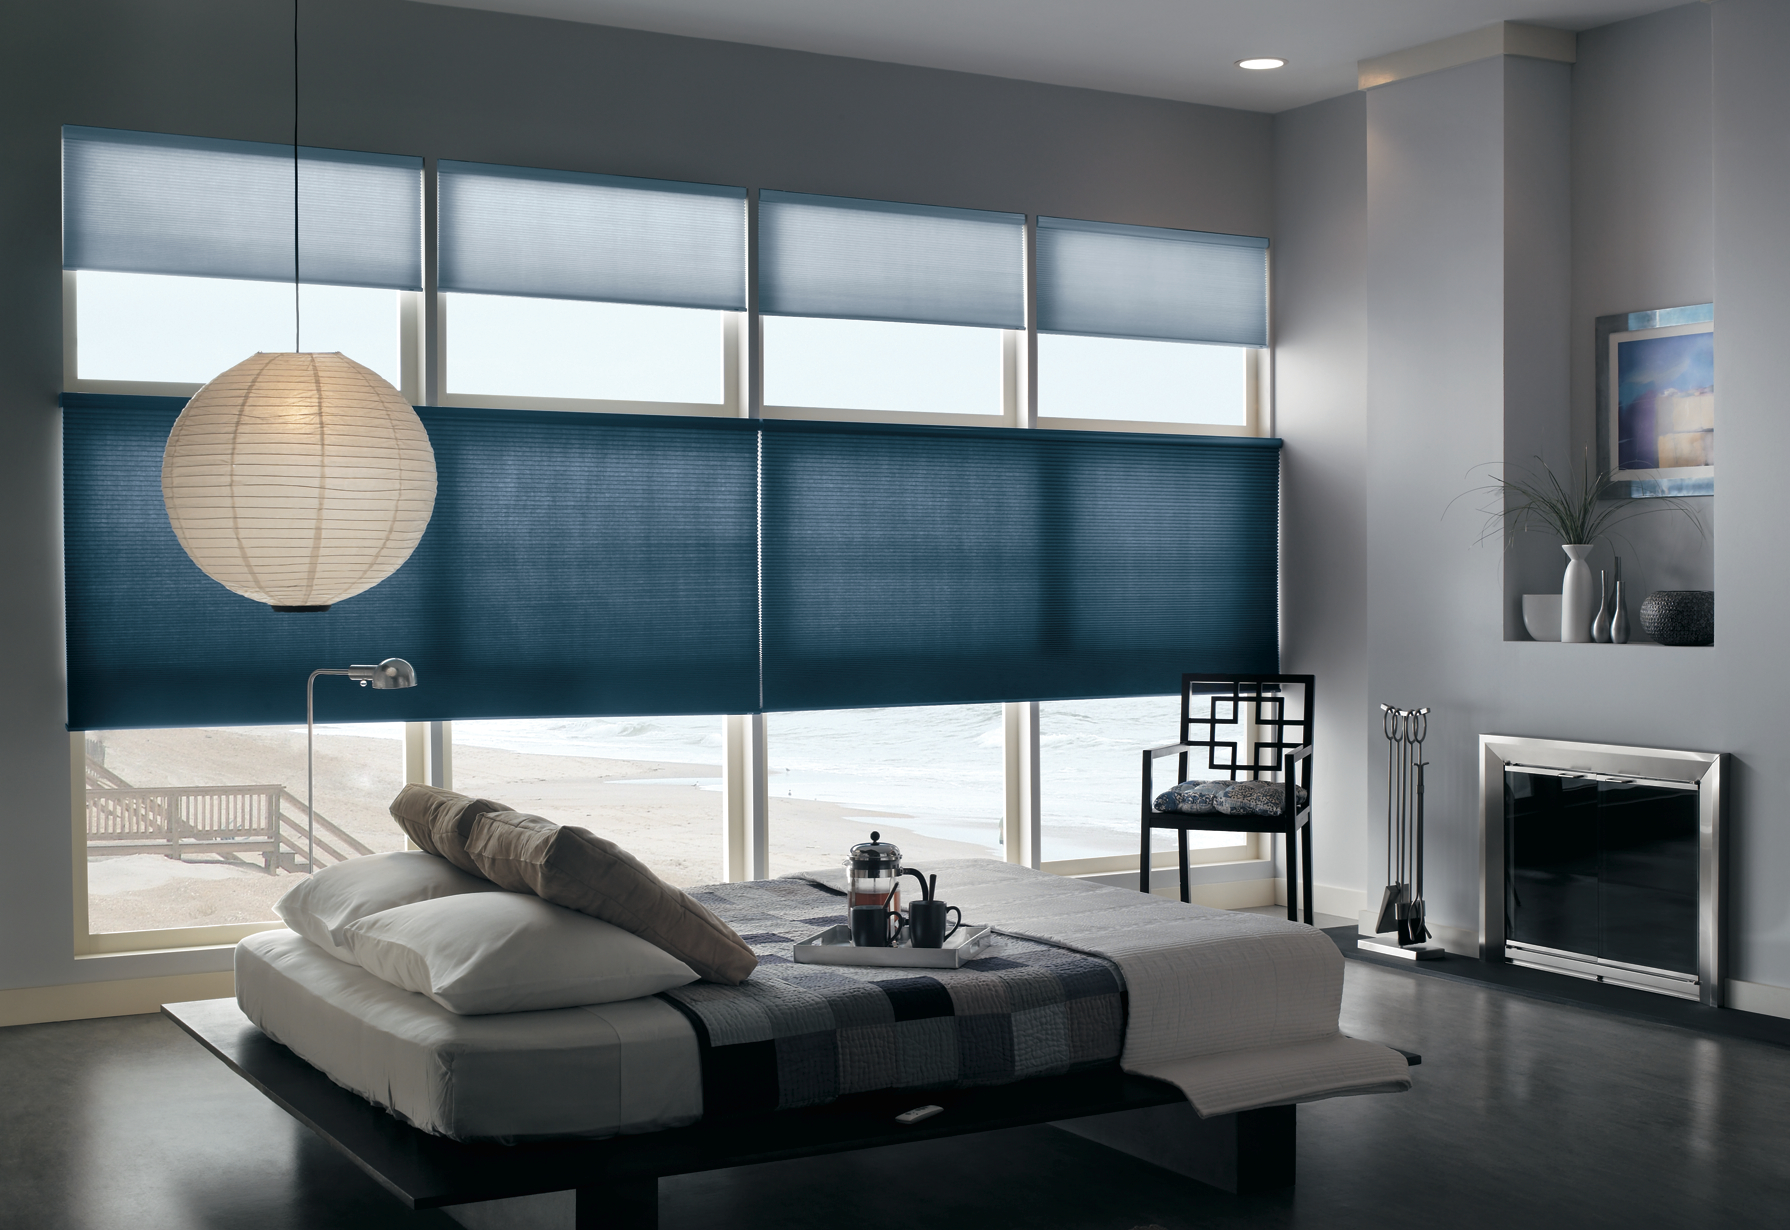 Cellular shades for your master bedroom from blindsgalore for Shades for bedroom windows